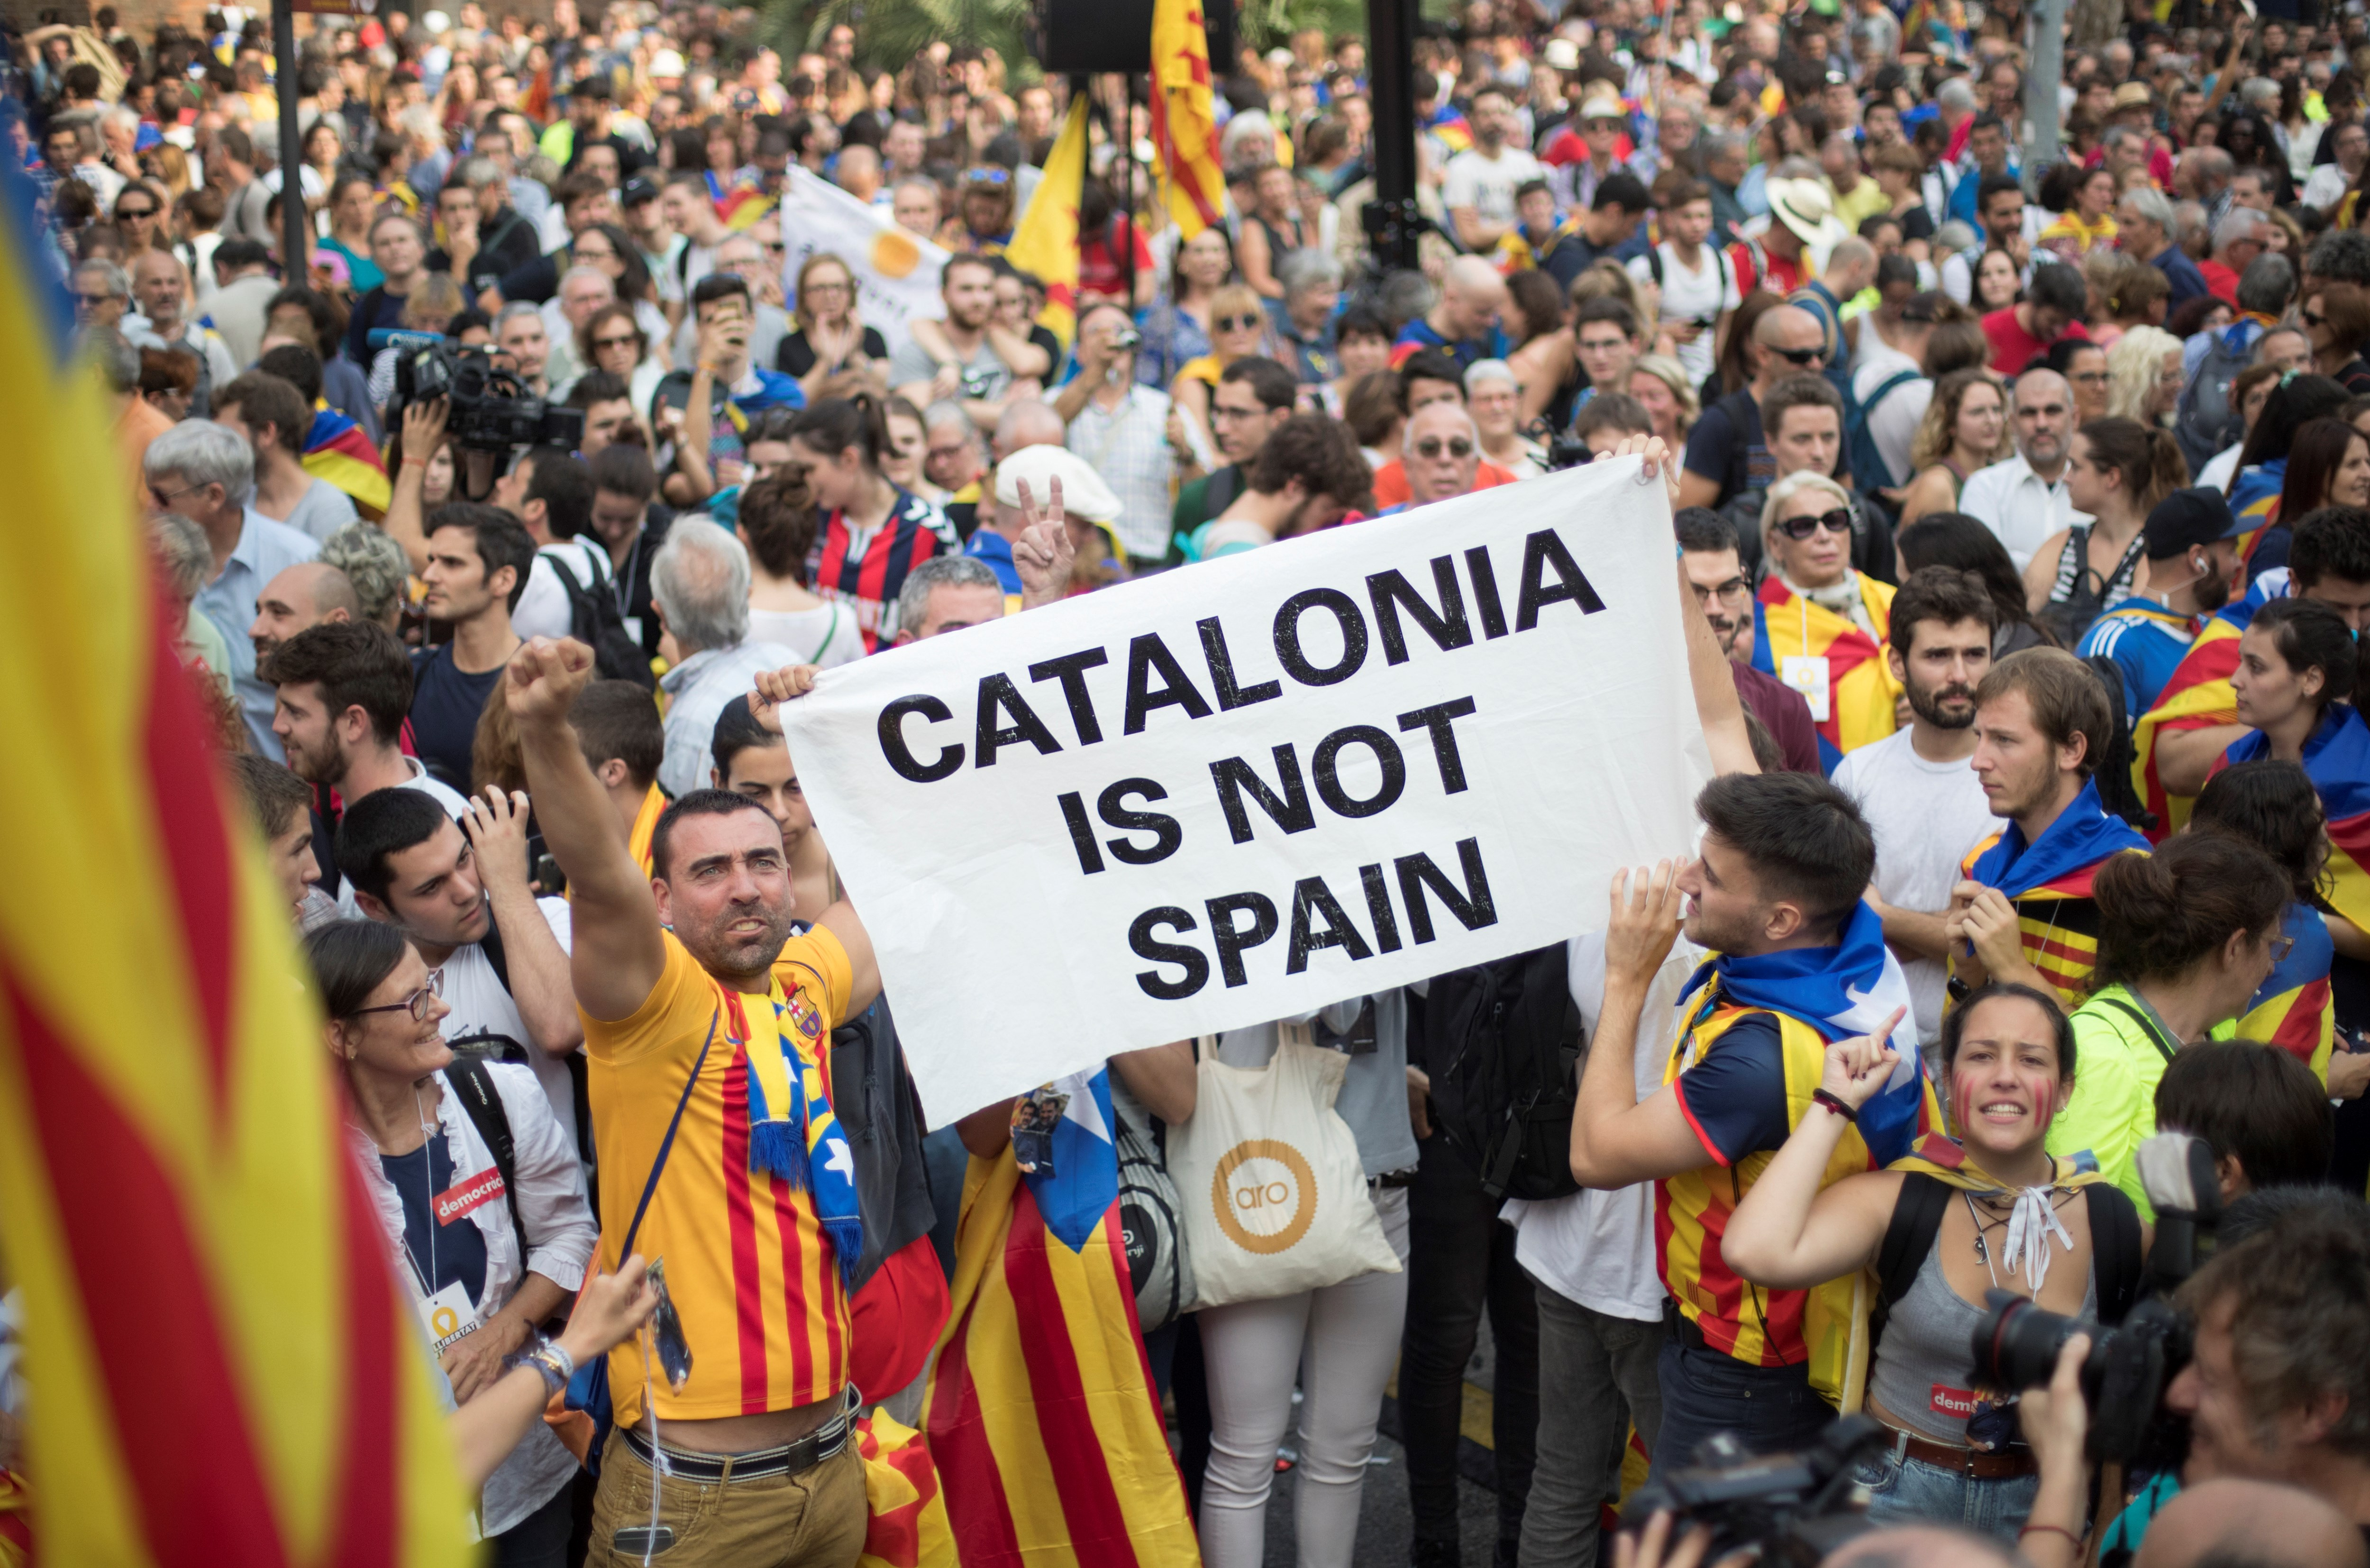 Puigdemont and five former Catalan ministers may seek asylum in Belgium